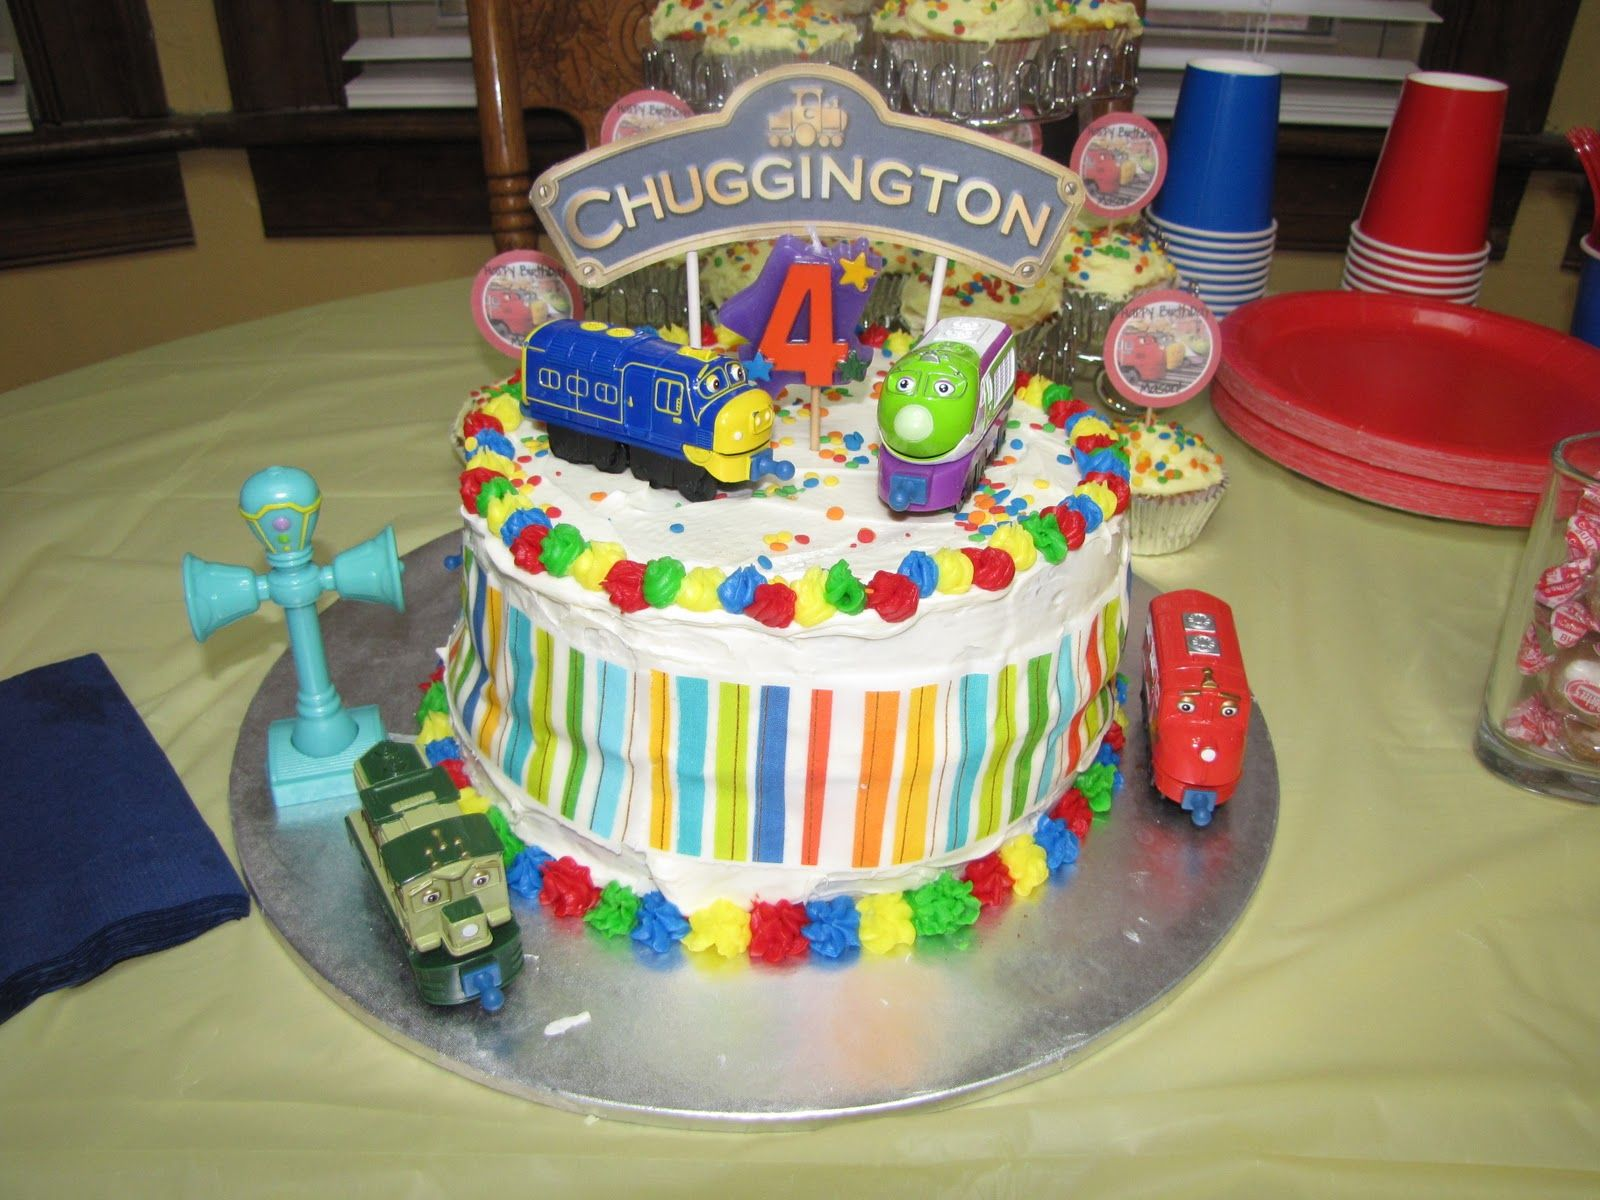 chugginton cake simple round cakes with decorationsaccents from